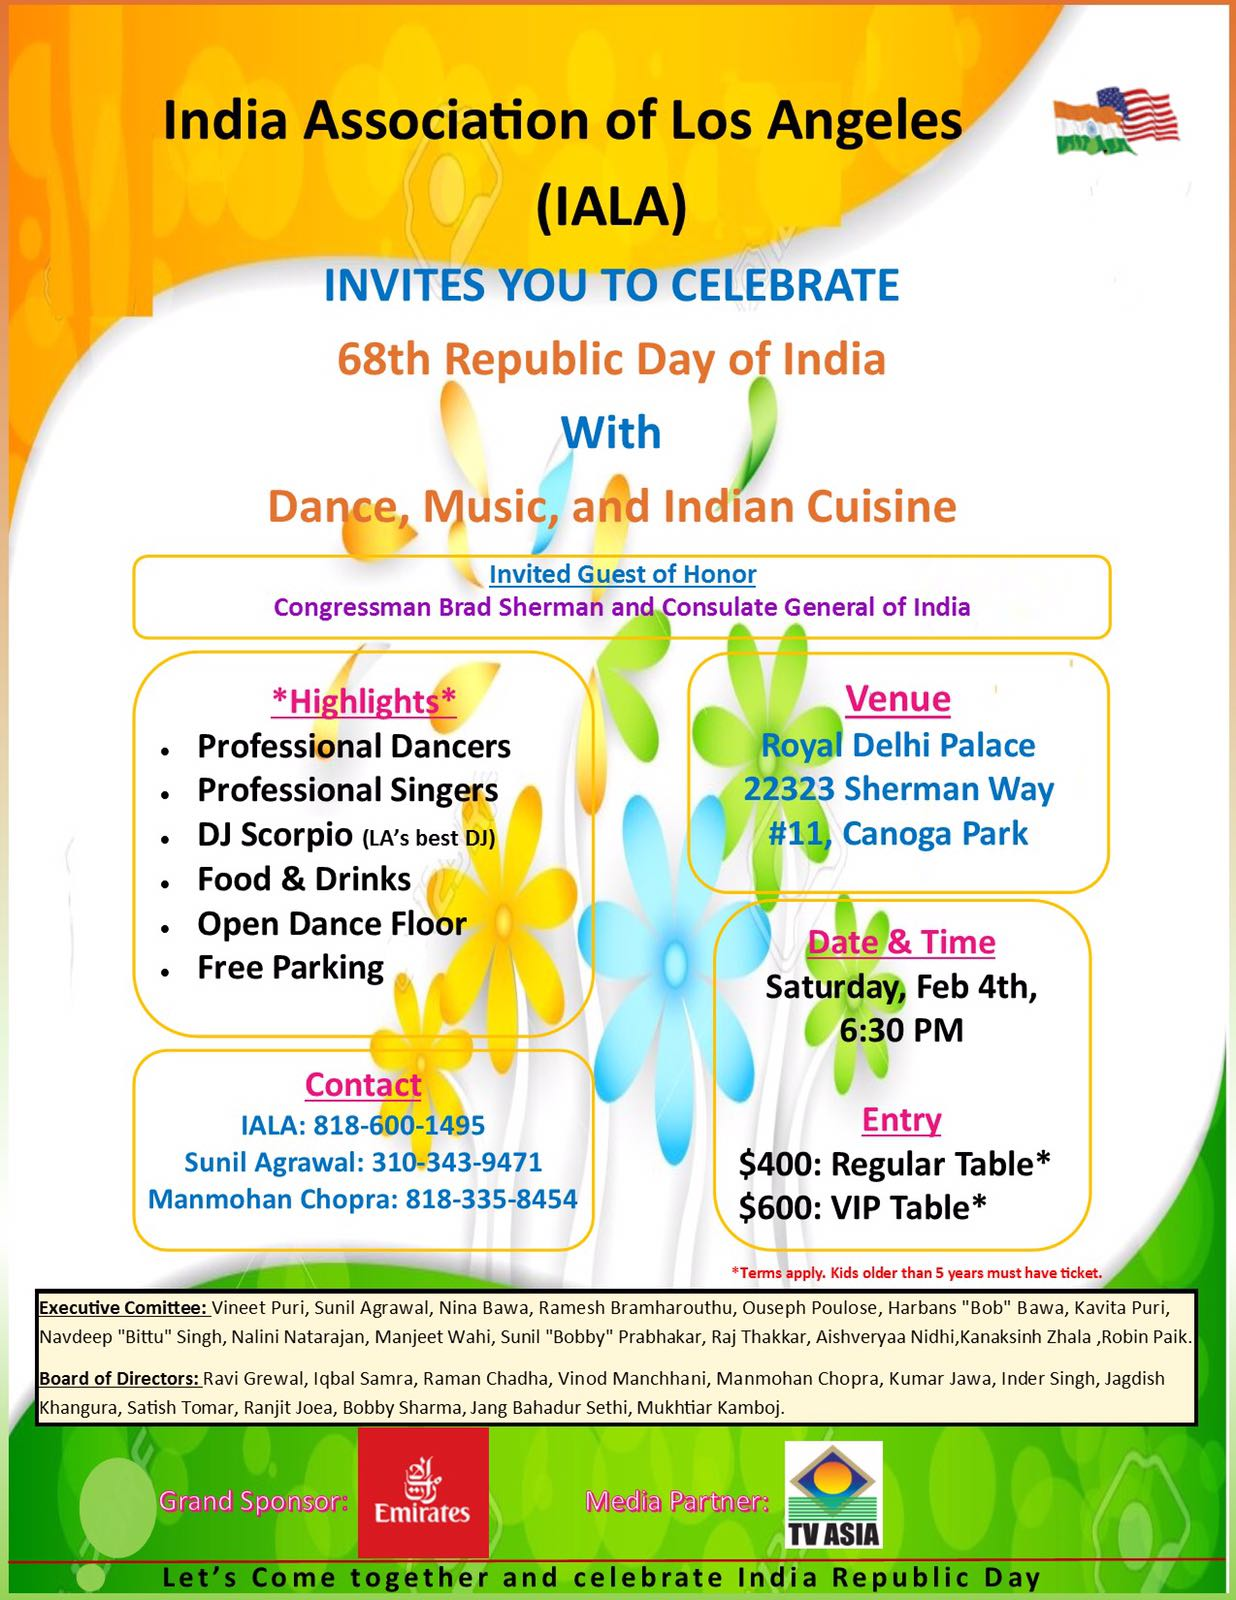 welcome to associationla org for invitation details please click here